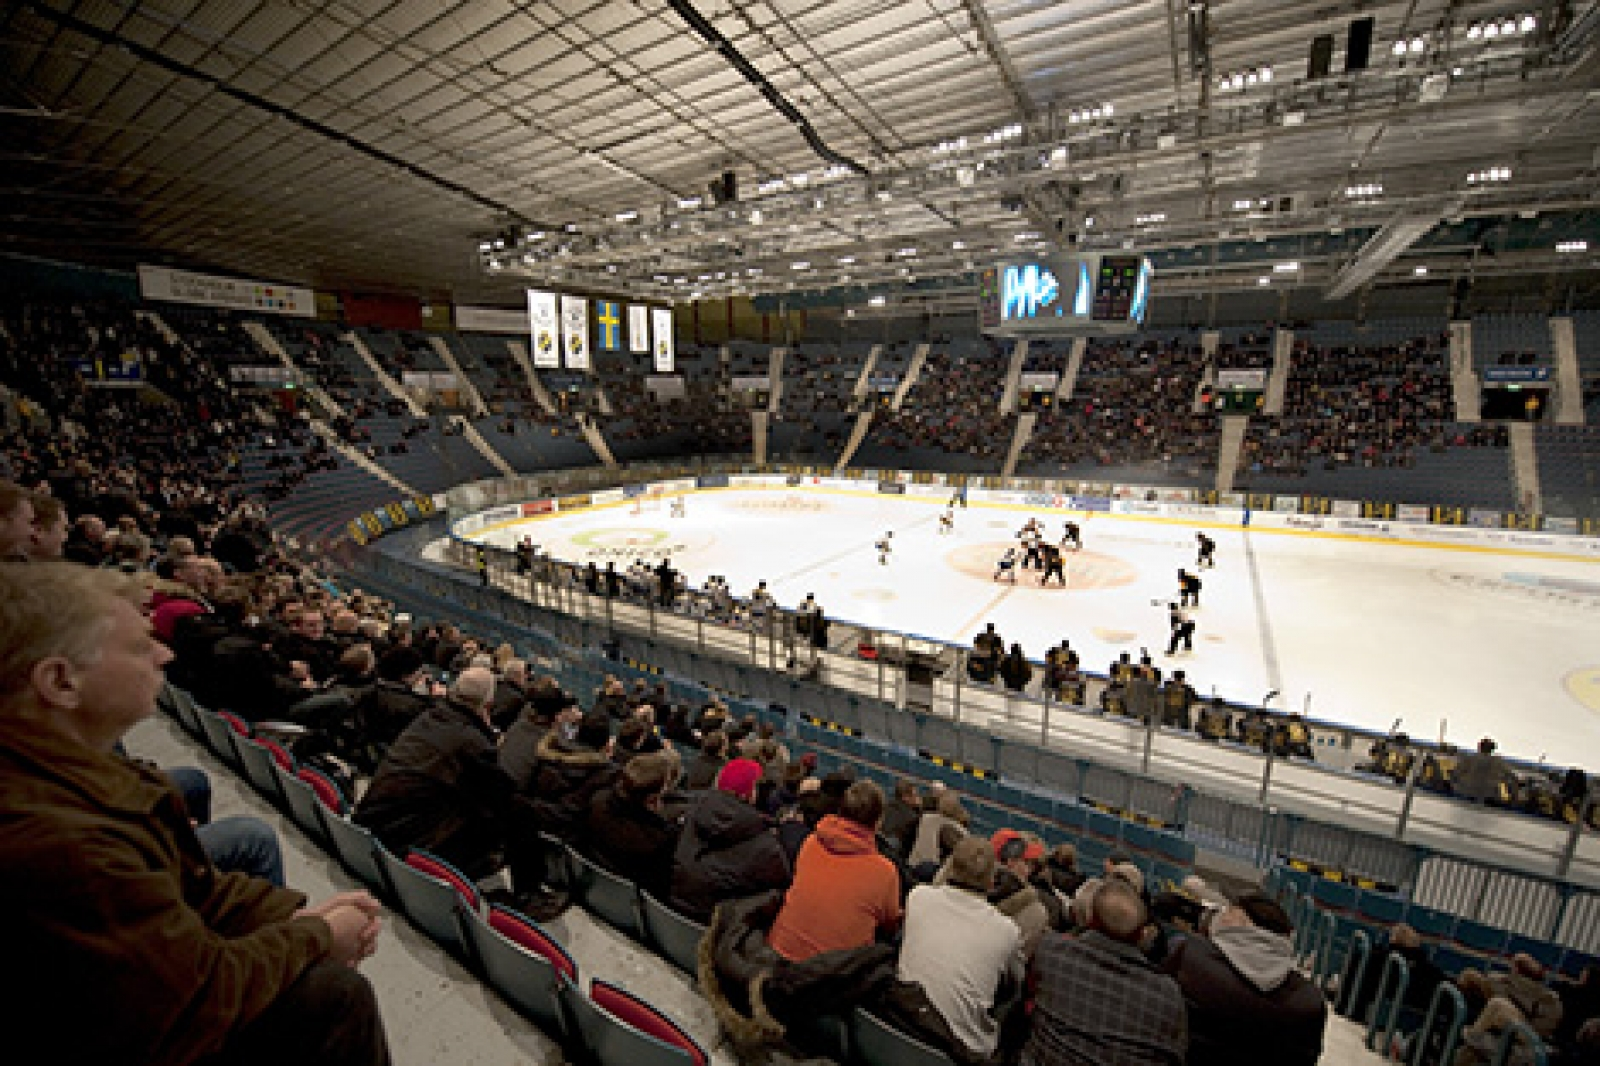 Nya ekonomiska problem for pressat aik hockey